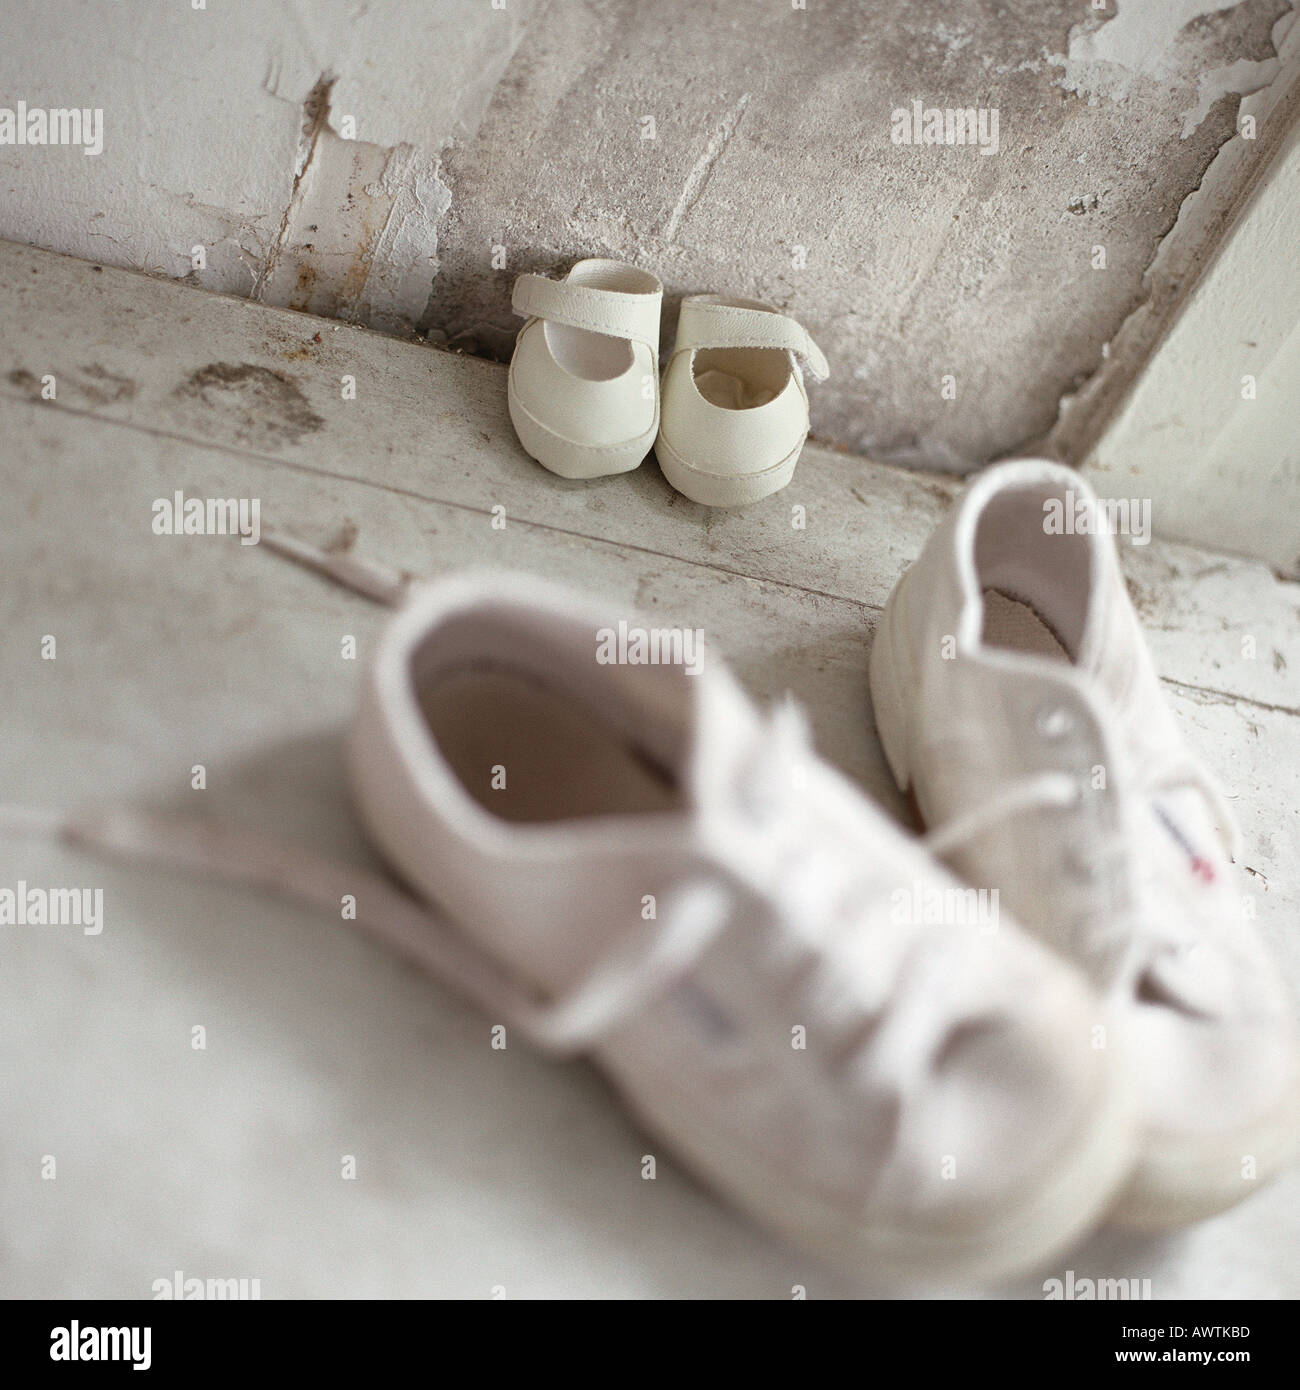 Two pairs of children's shoes on floor - Stock Image